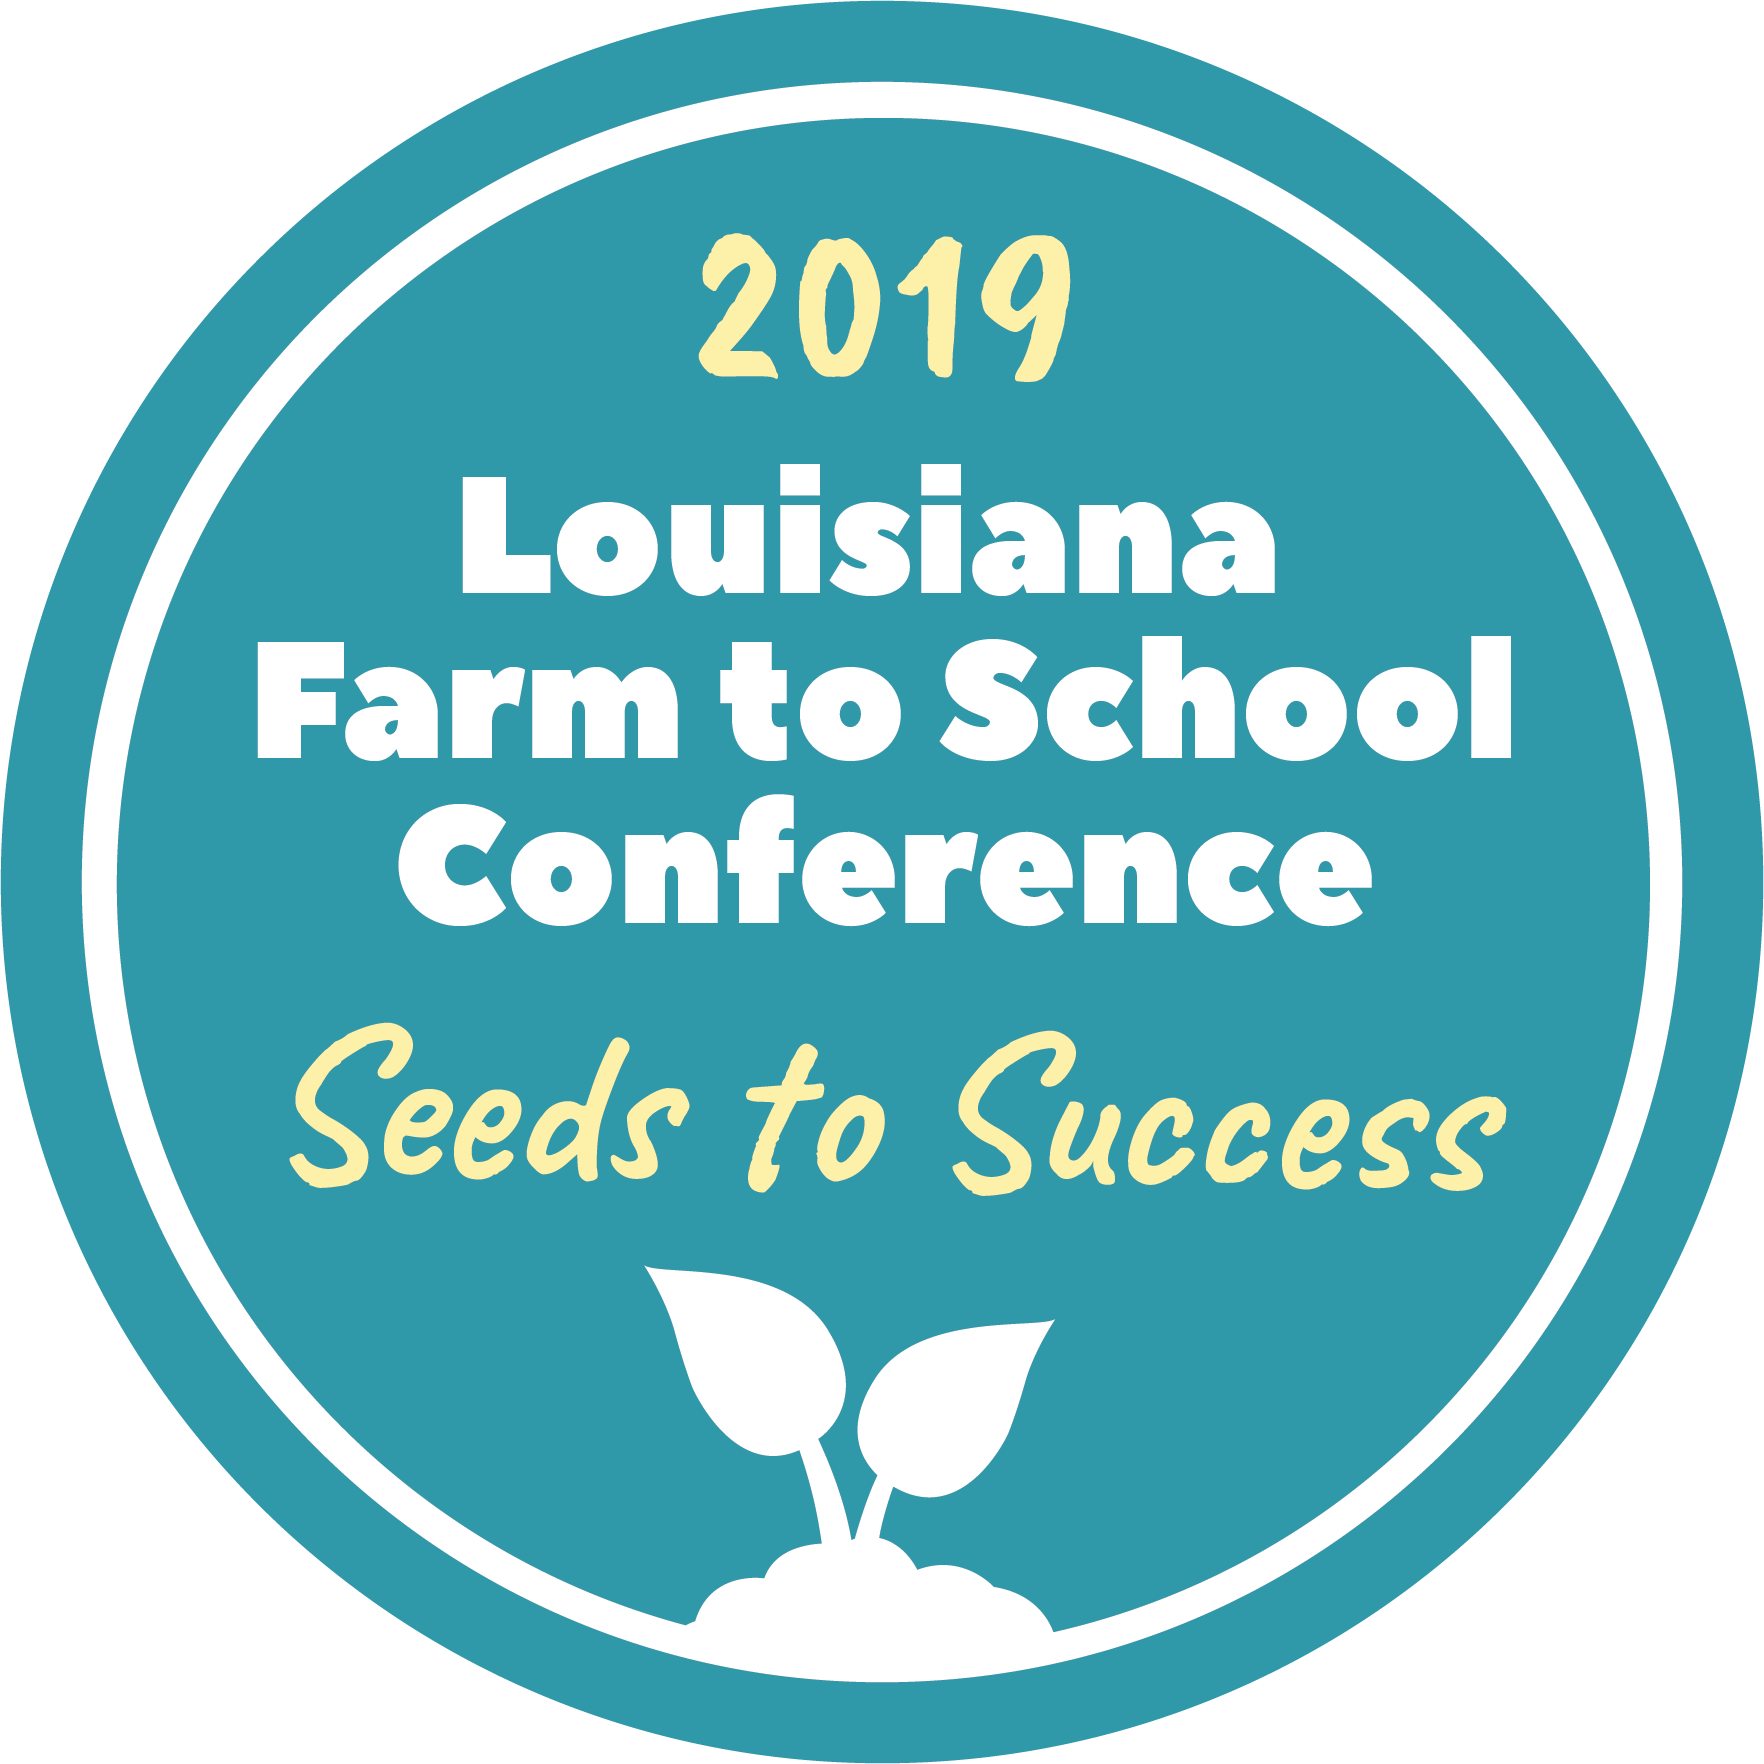 Louisiana Farm to School Conference 2019 Logo- Seeds to Success in blue circle with plant cut-out